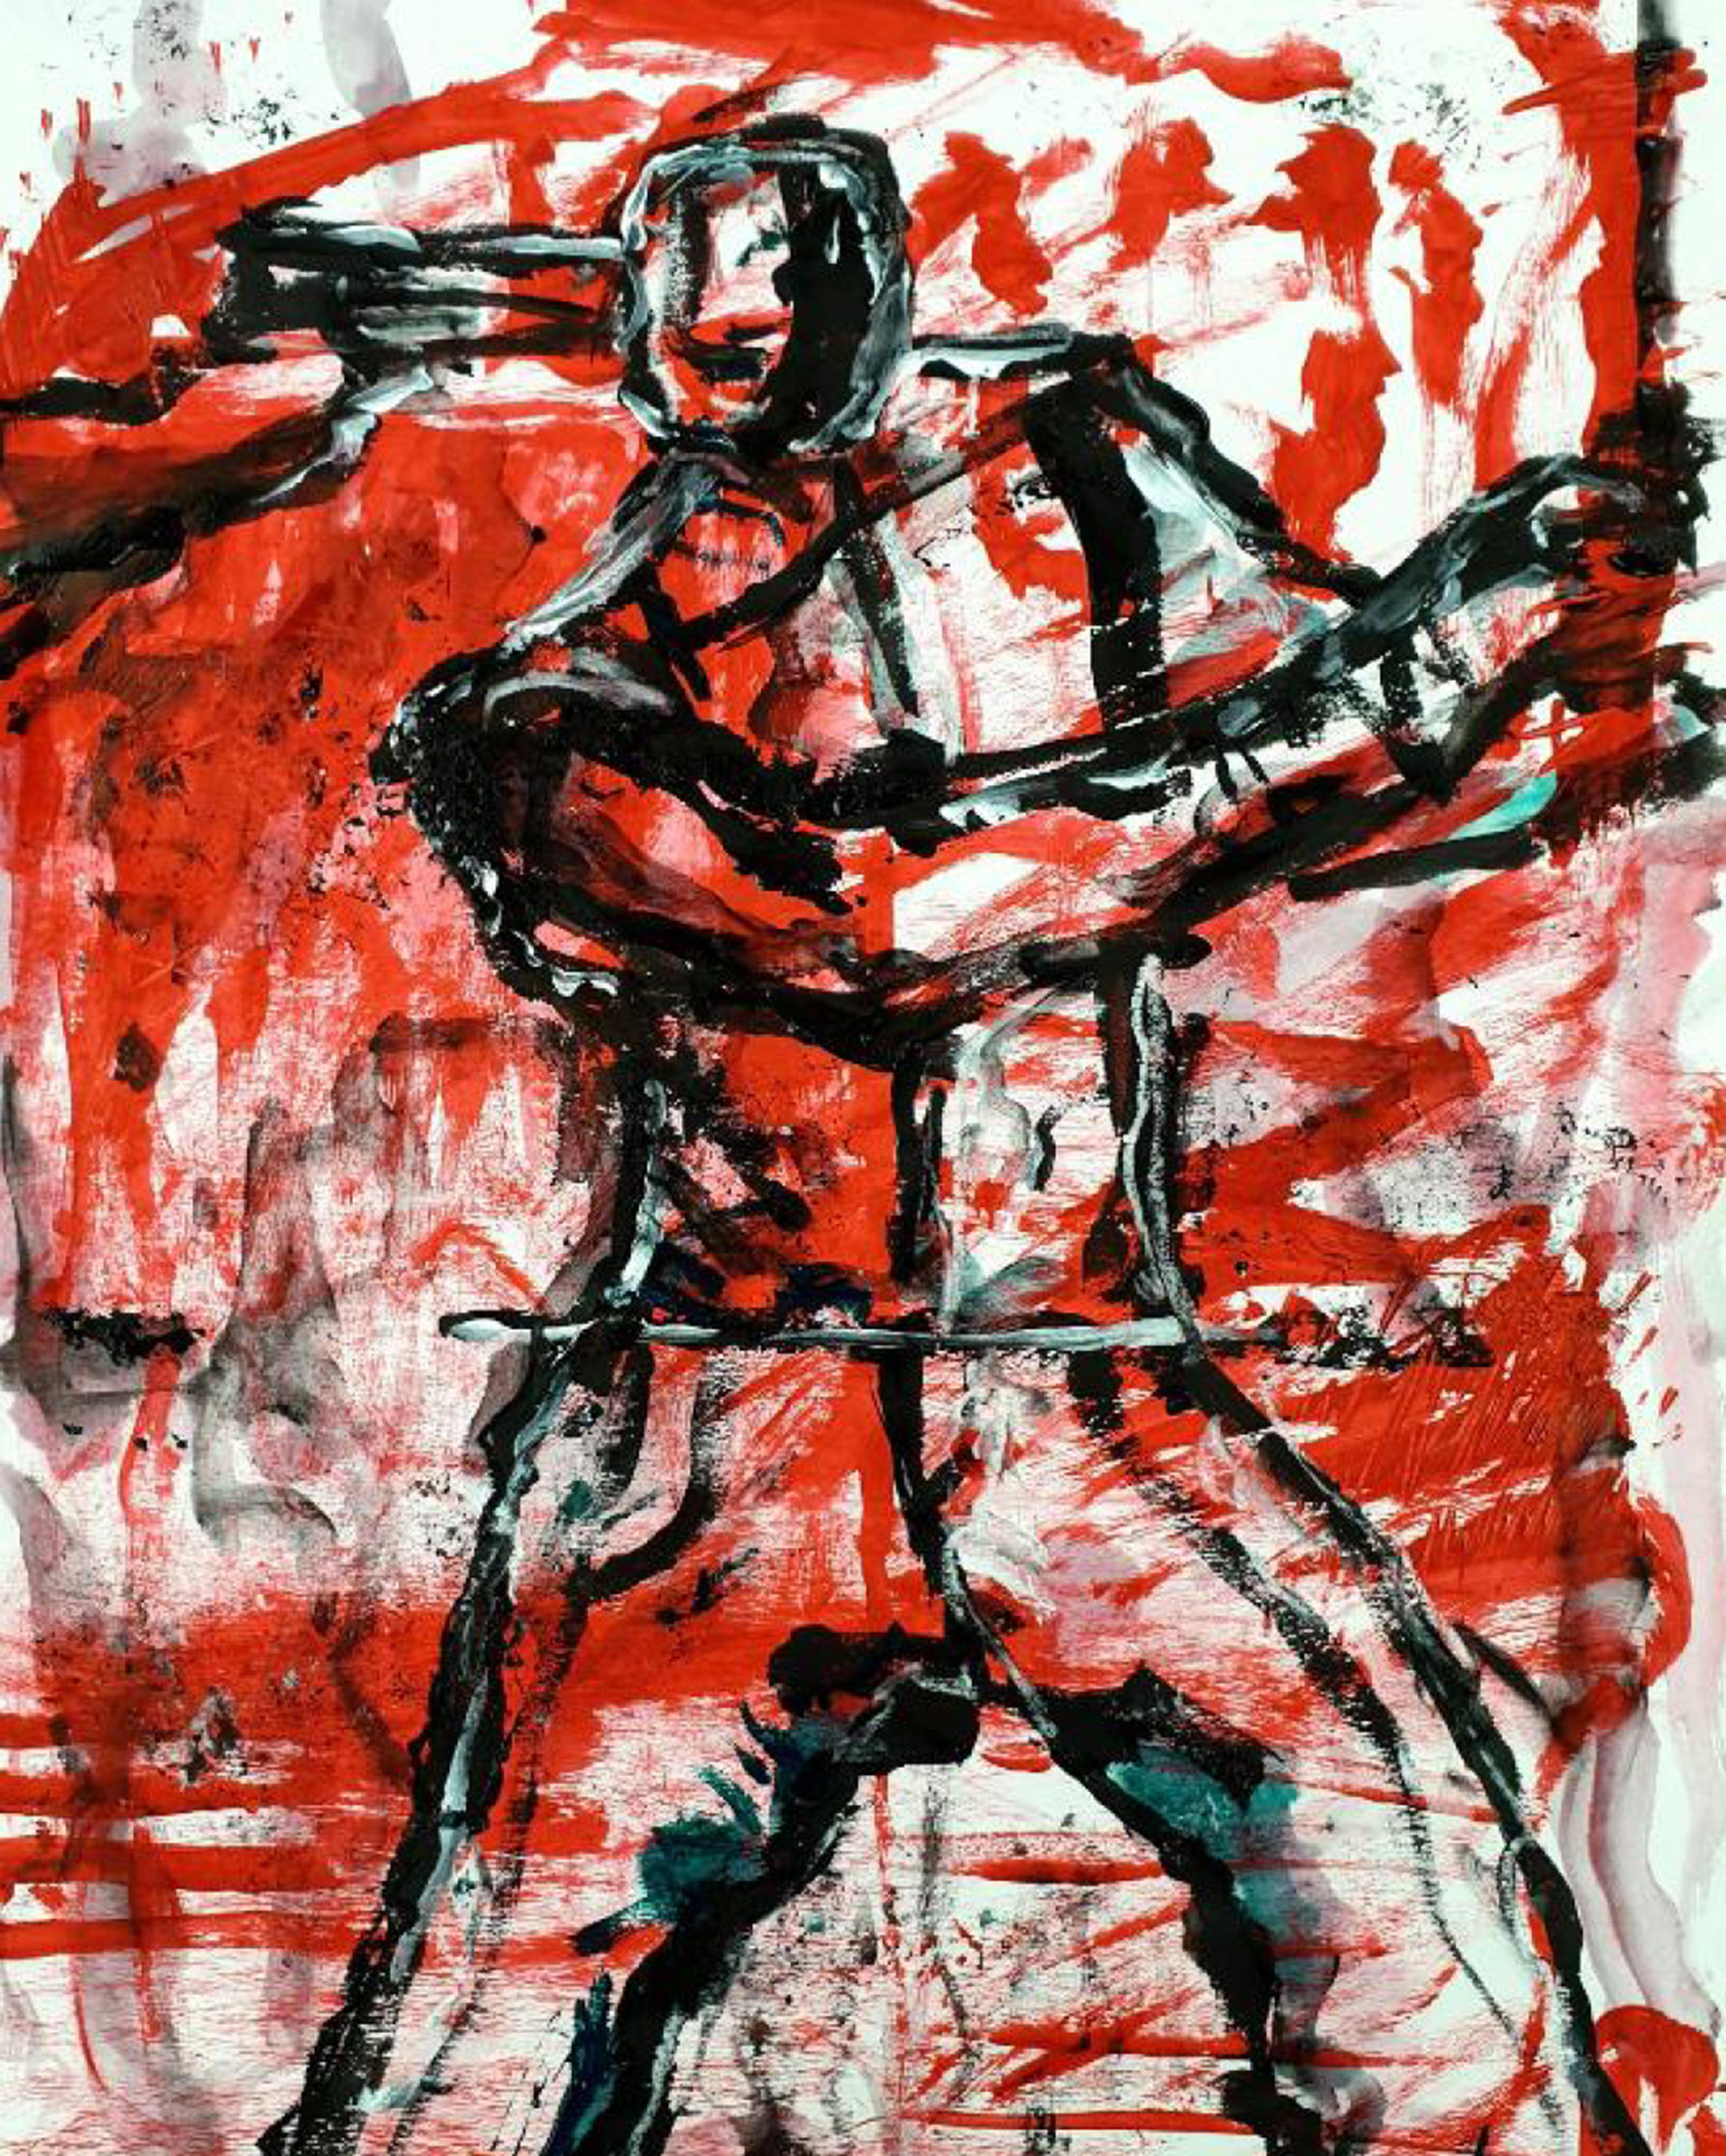 Abstract artwork in red on white of human figure swining a bat